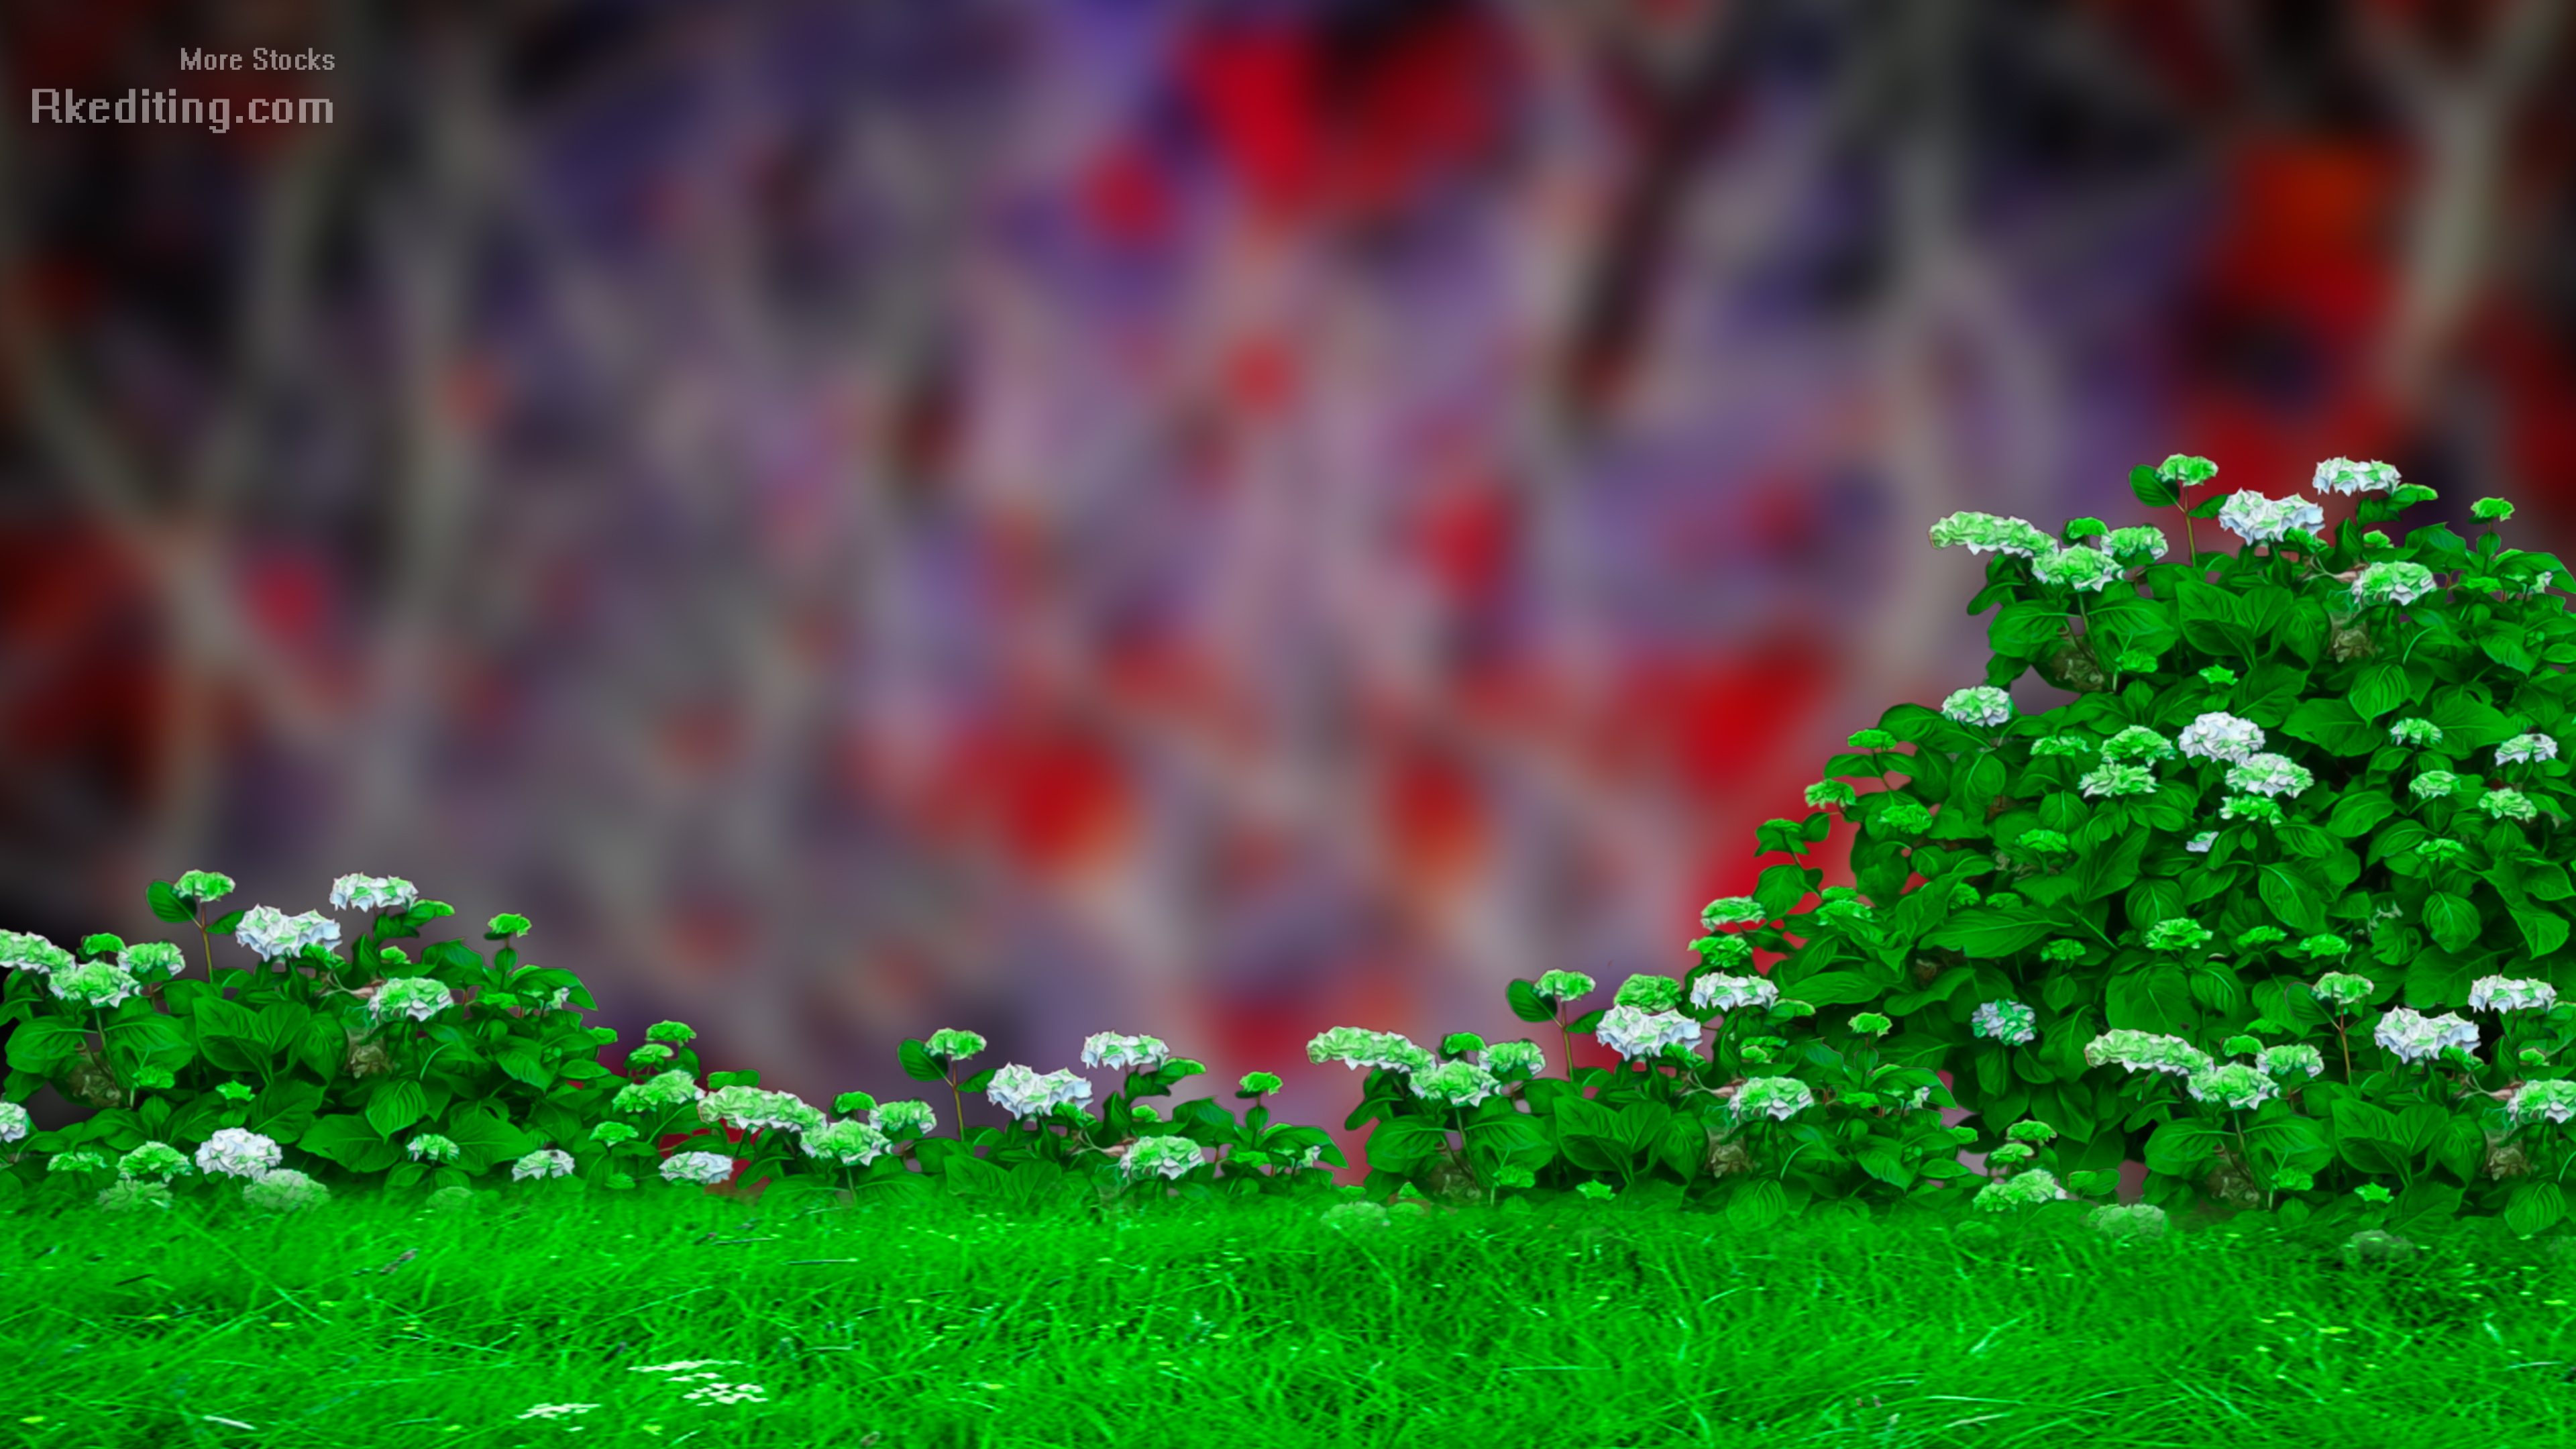 Full Hd Hd Background Images For Photoshop Editing